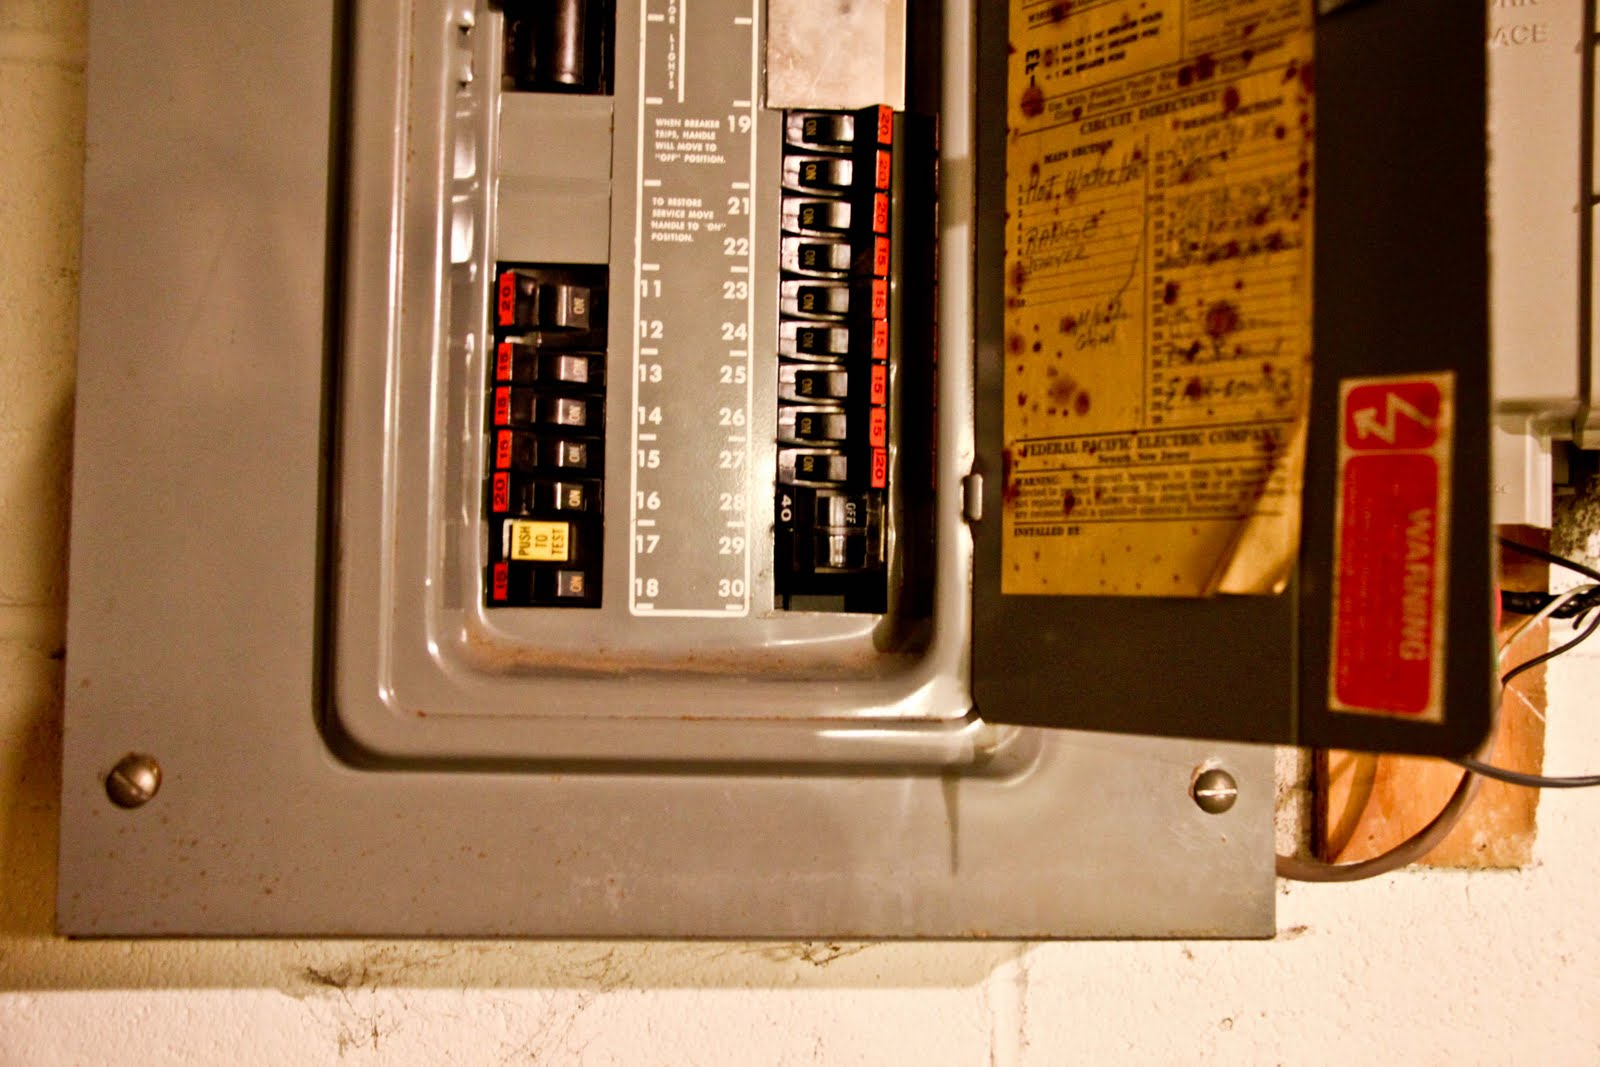 IMG_4614 replacing fuse on central ac unit work space how to reset fuse box in house at panicattacktreatment.co